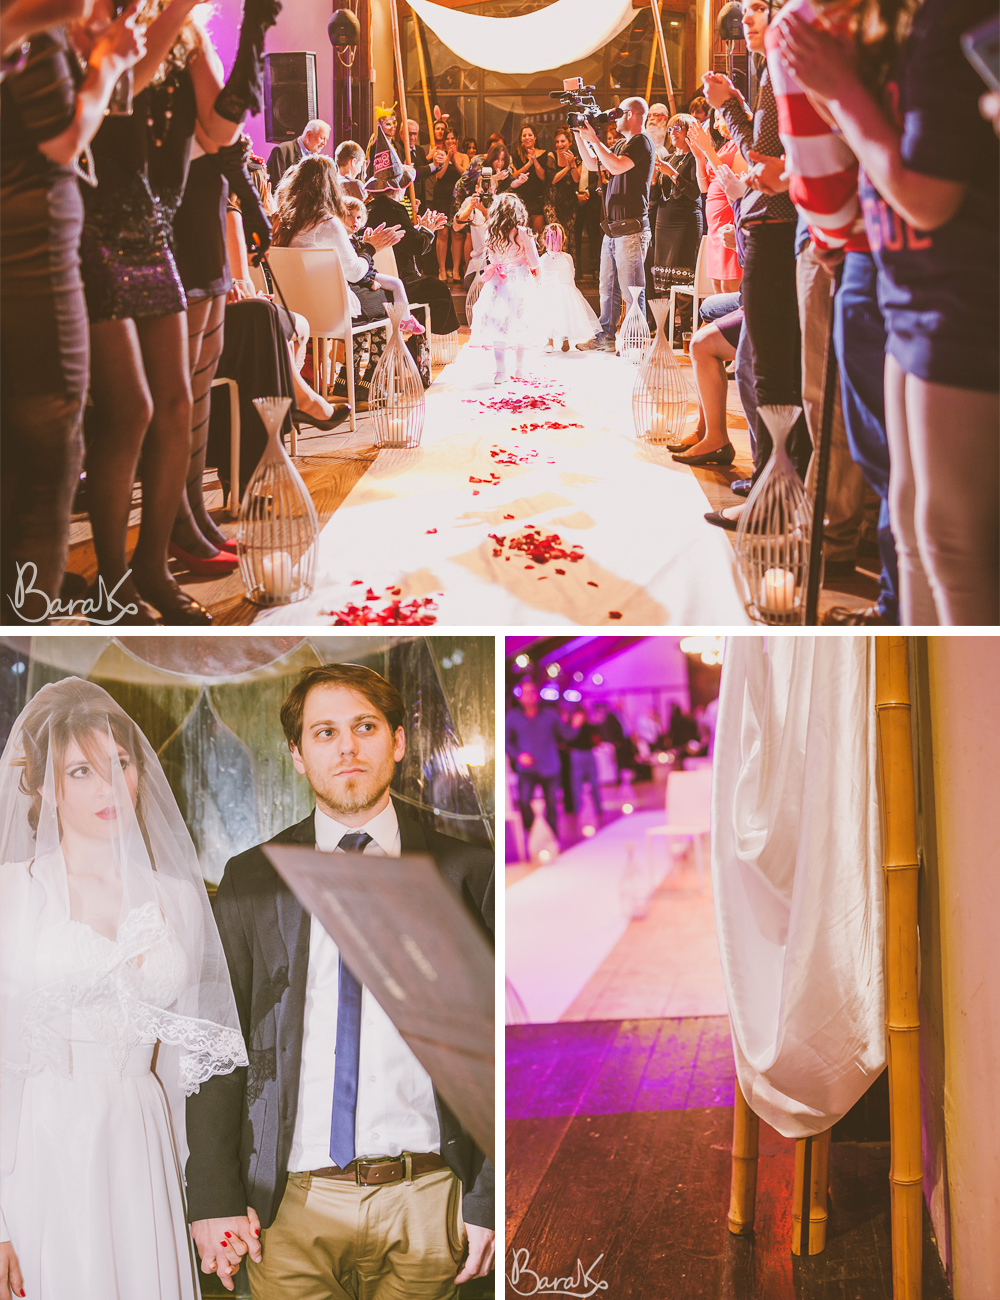 Fancy dress Jewish wedding at Bikta Bayar Carmel Forest Israel